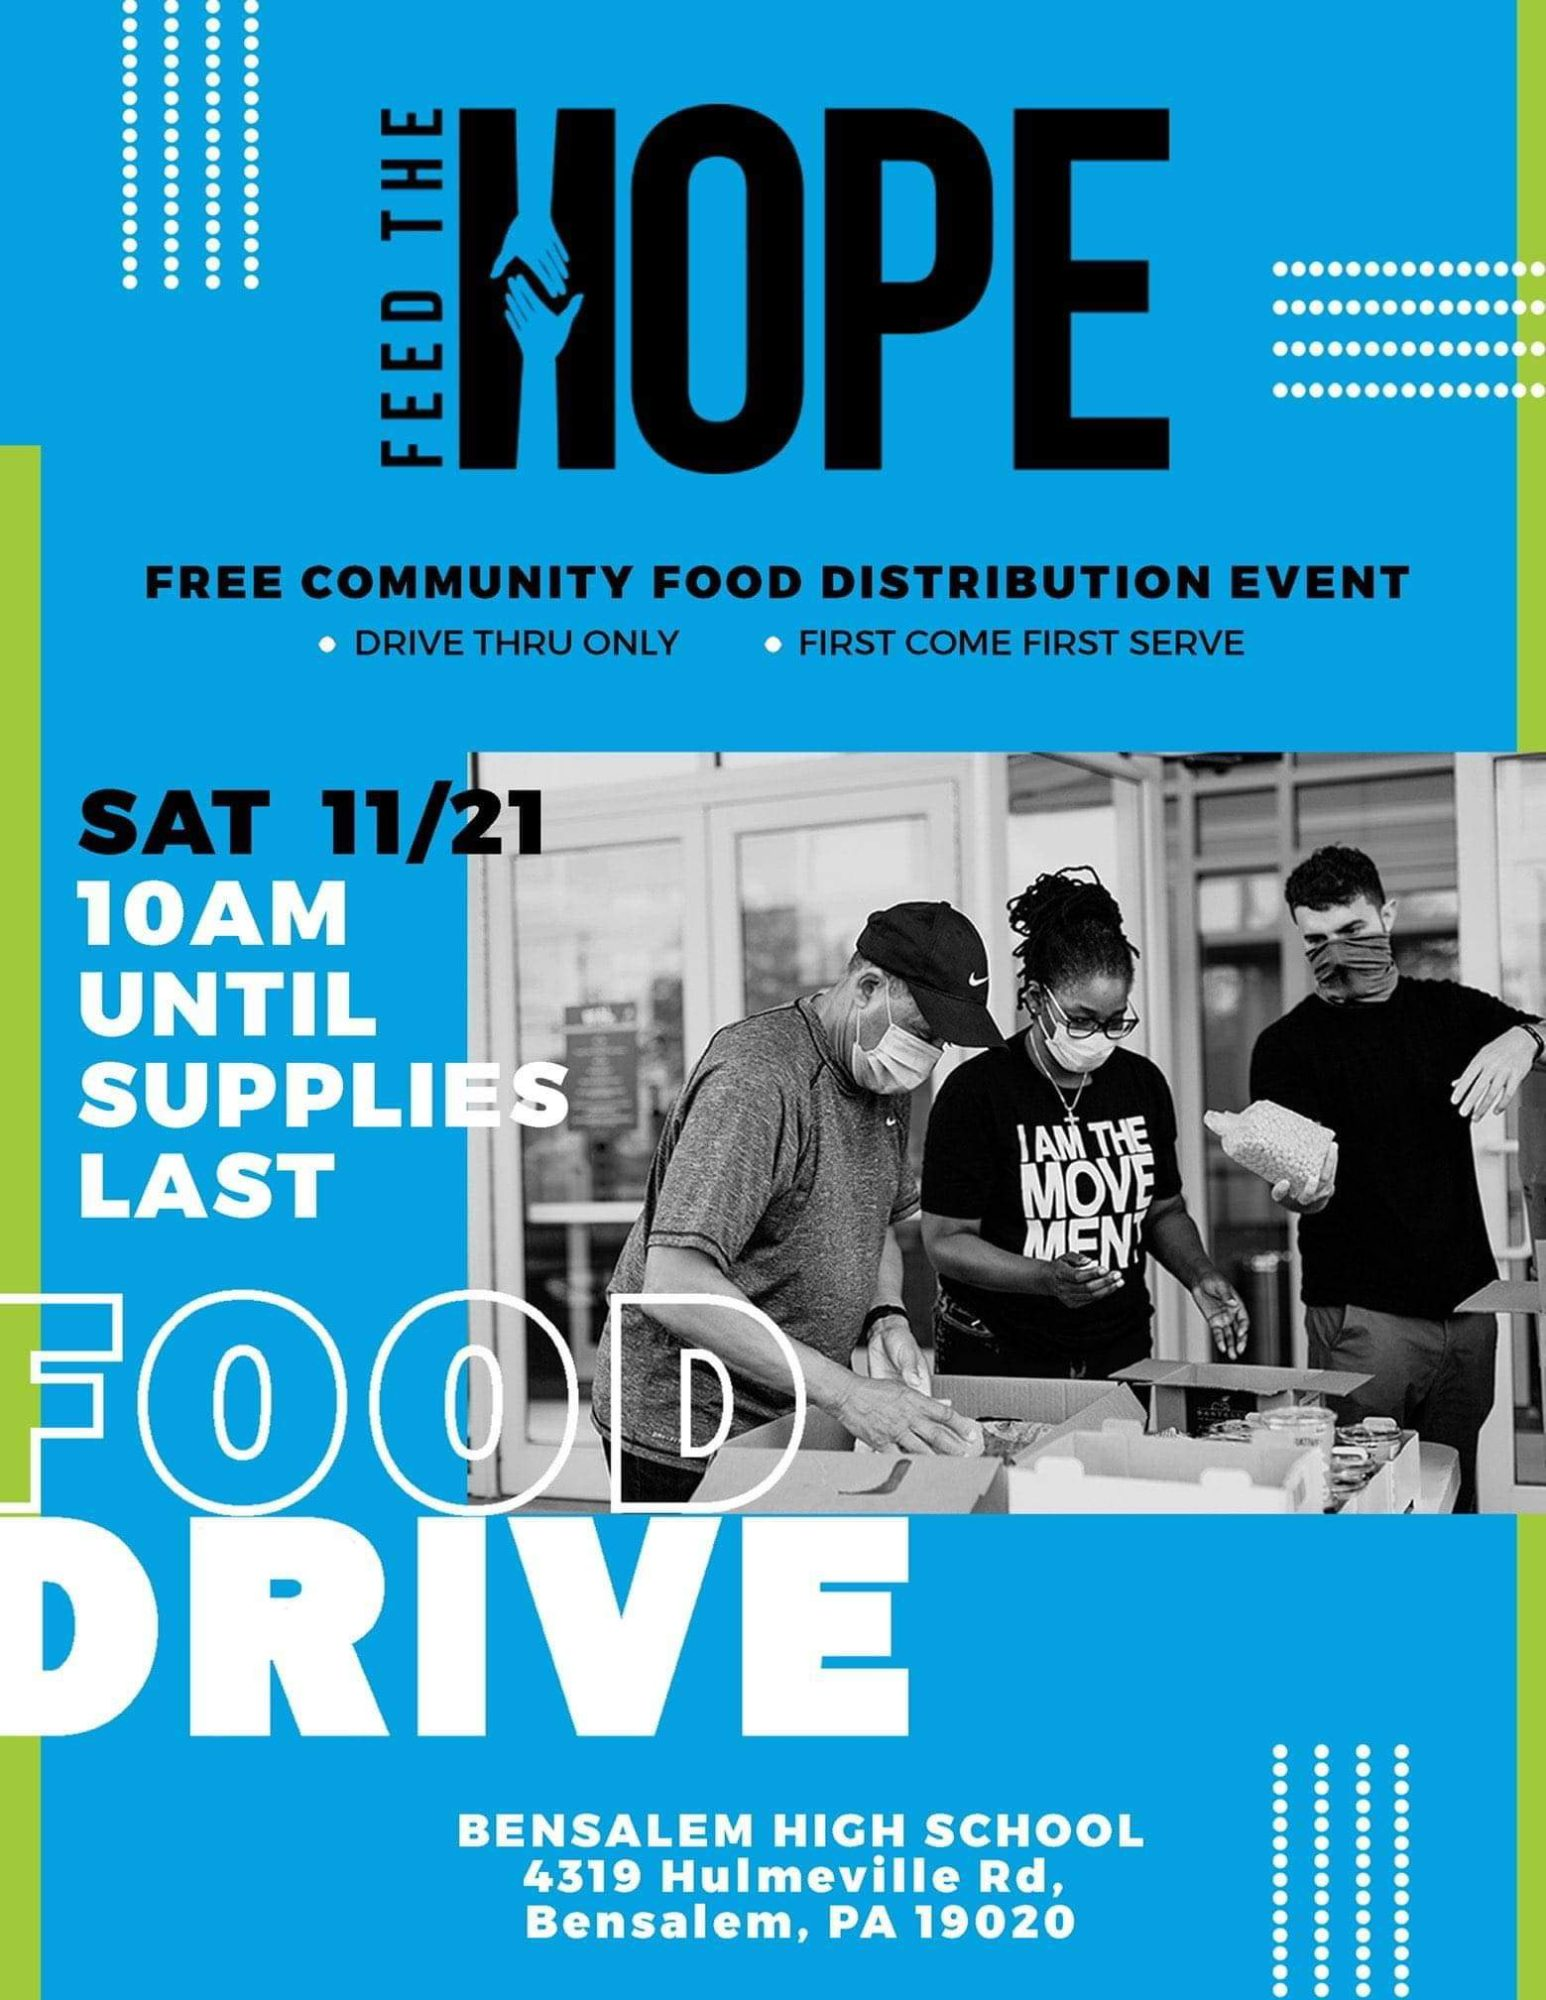 Feed the Hope Food Dist Event